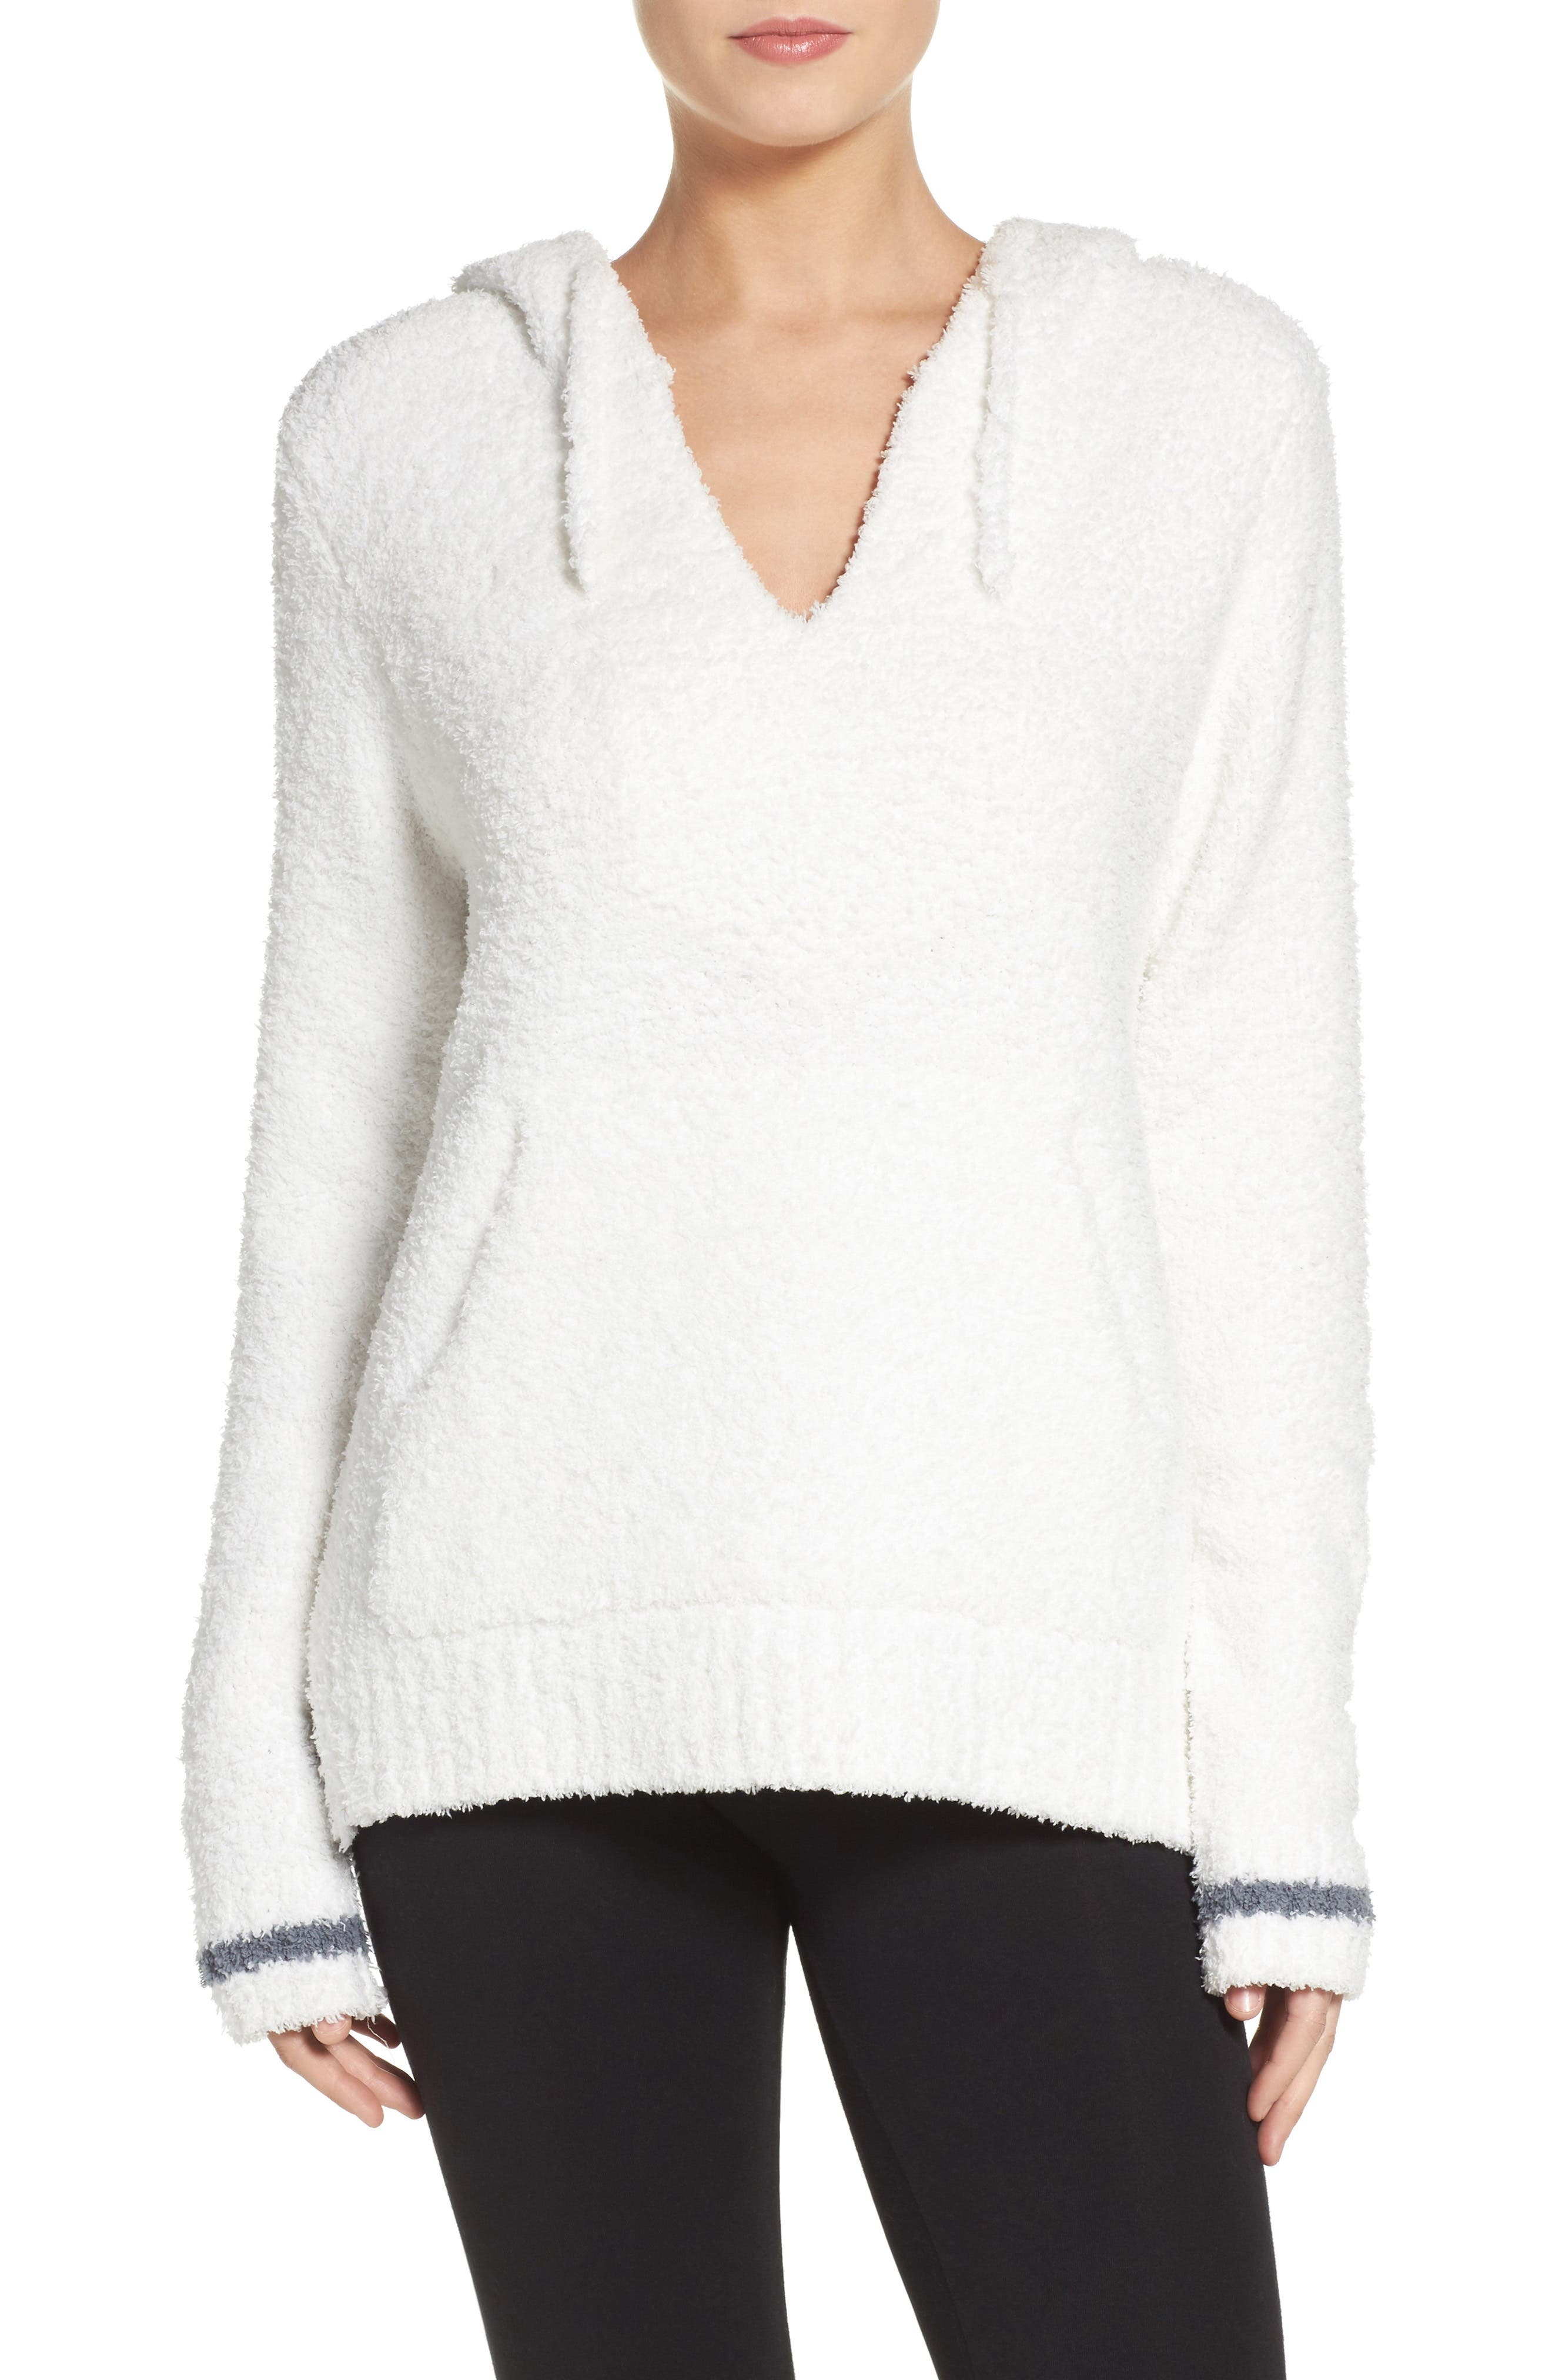 Barefoot Dreams Cozychic<sup>®</sup> Baha Lounge Hoodie,                         Main,                         color, White/ Graphite Stripe